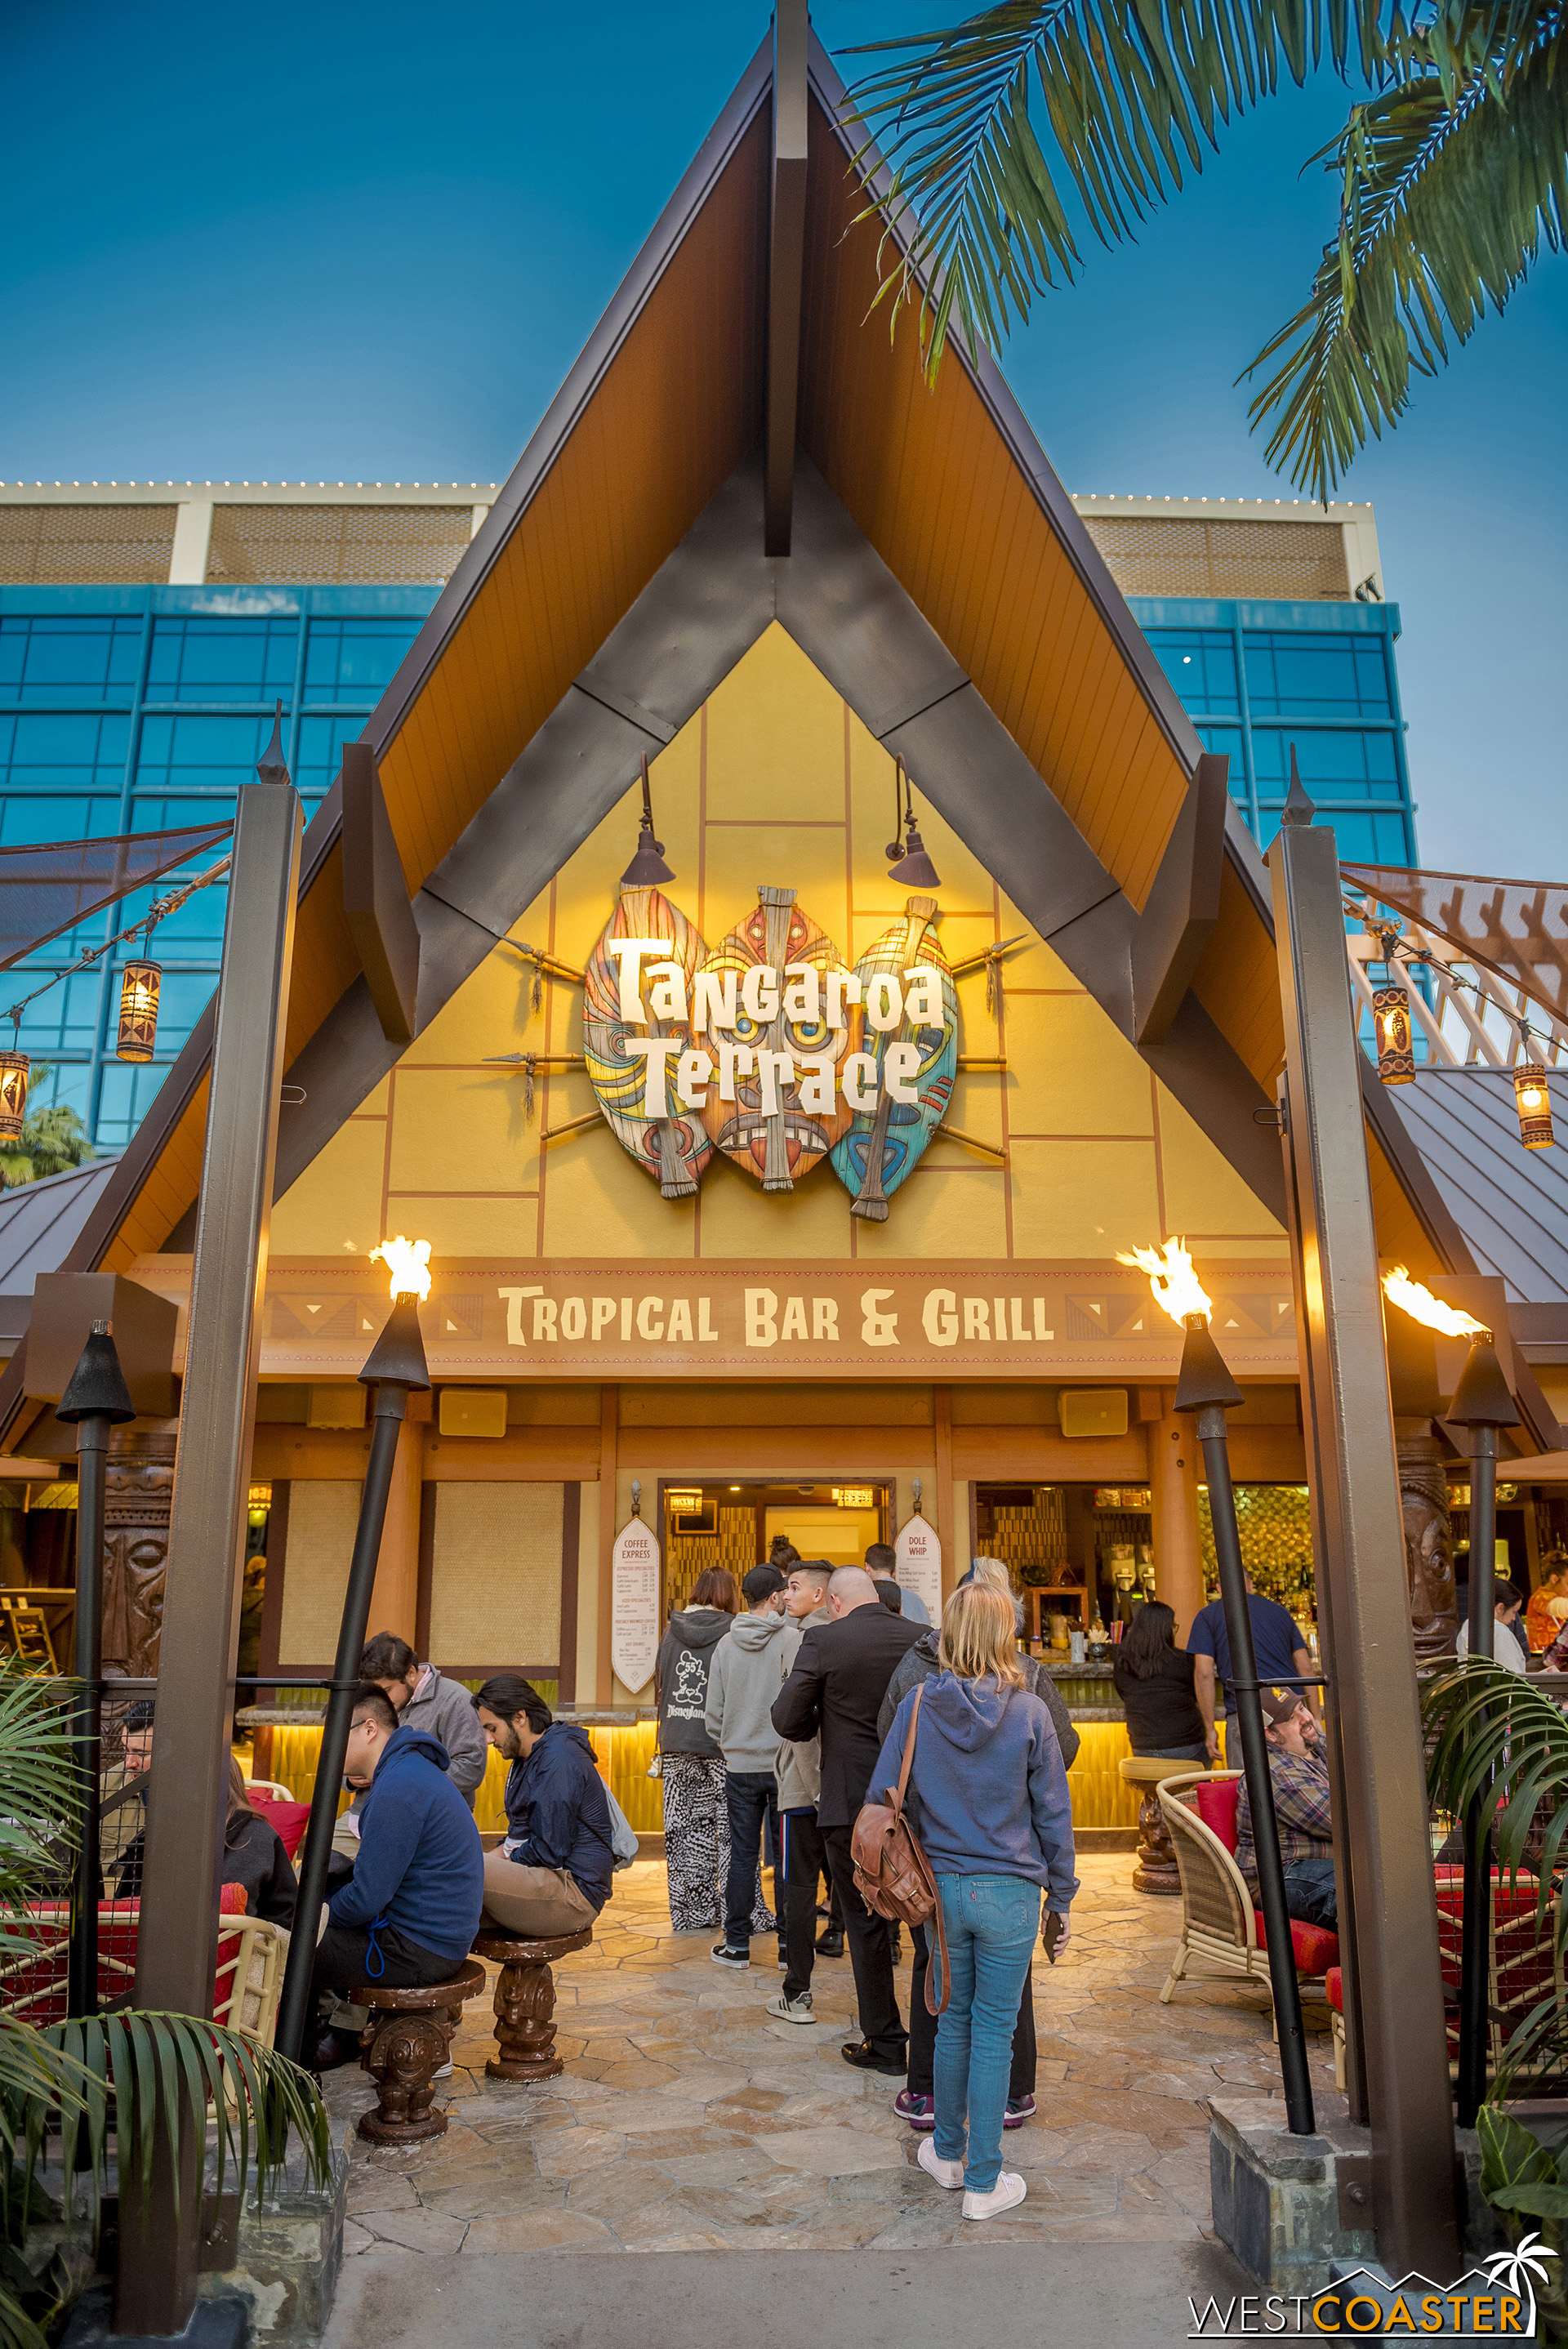 Tangaroa Terrace has attracted some good crowds since its reopening early last month.